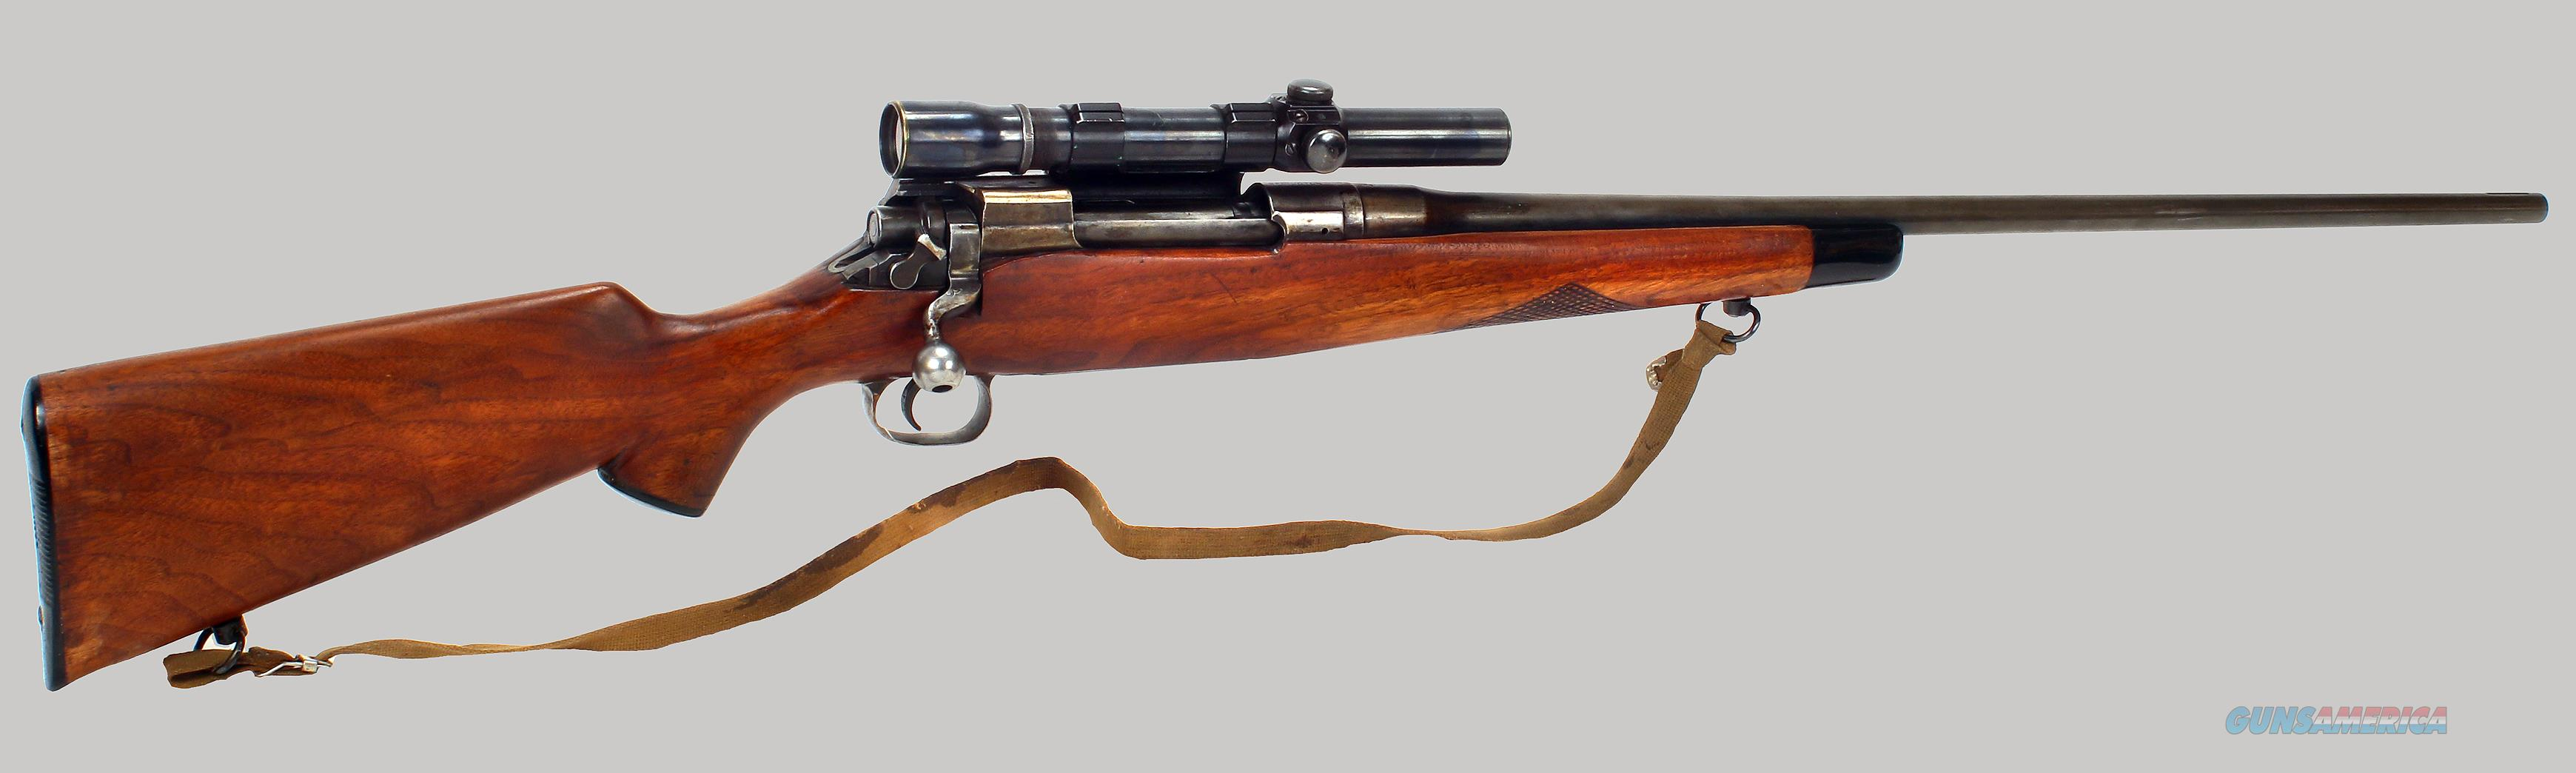 Remington Bolt Action 30-06 Model 1917 Eddystone Rifle  Guns > Rifles > Remington Rifles - Modern > Bolt Action Non-Model 700 > Sporting